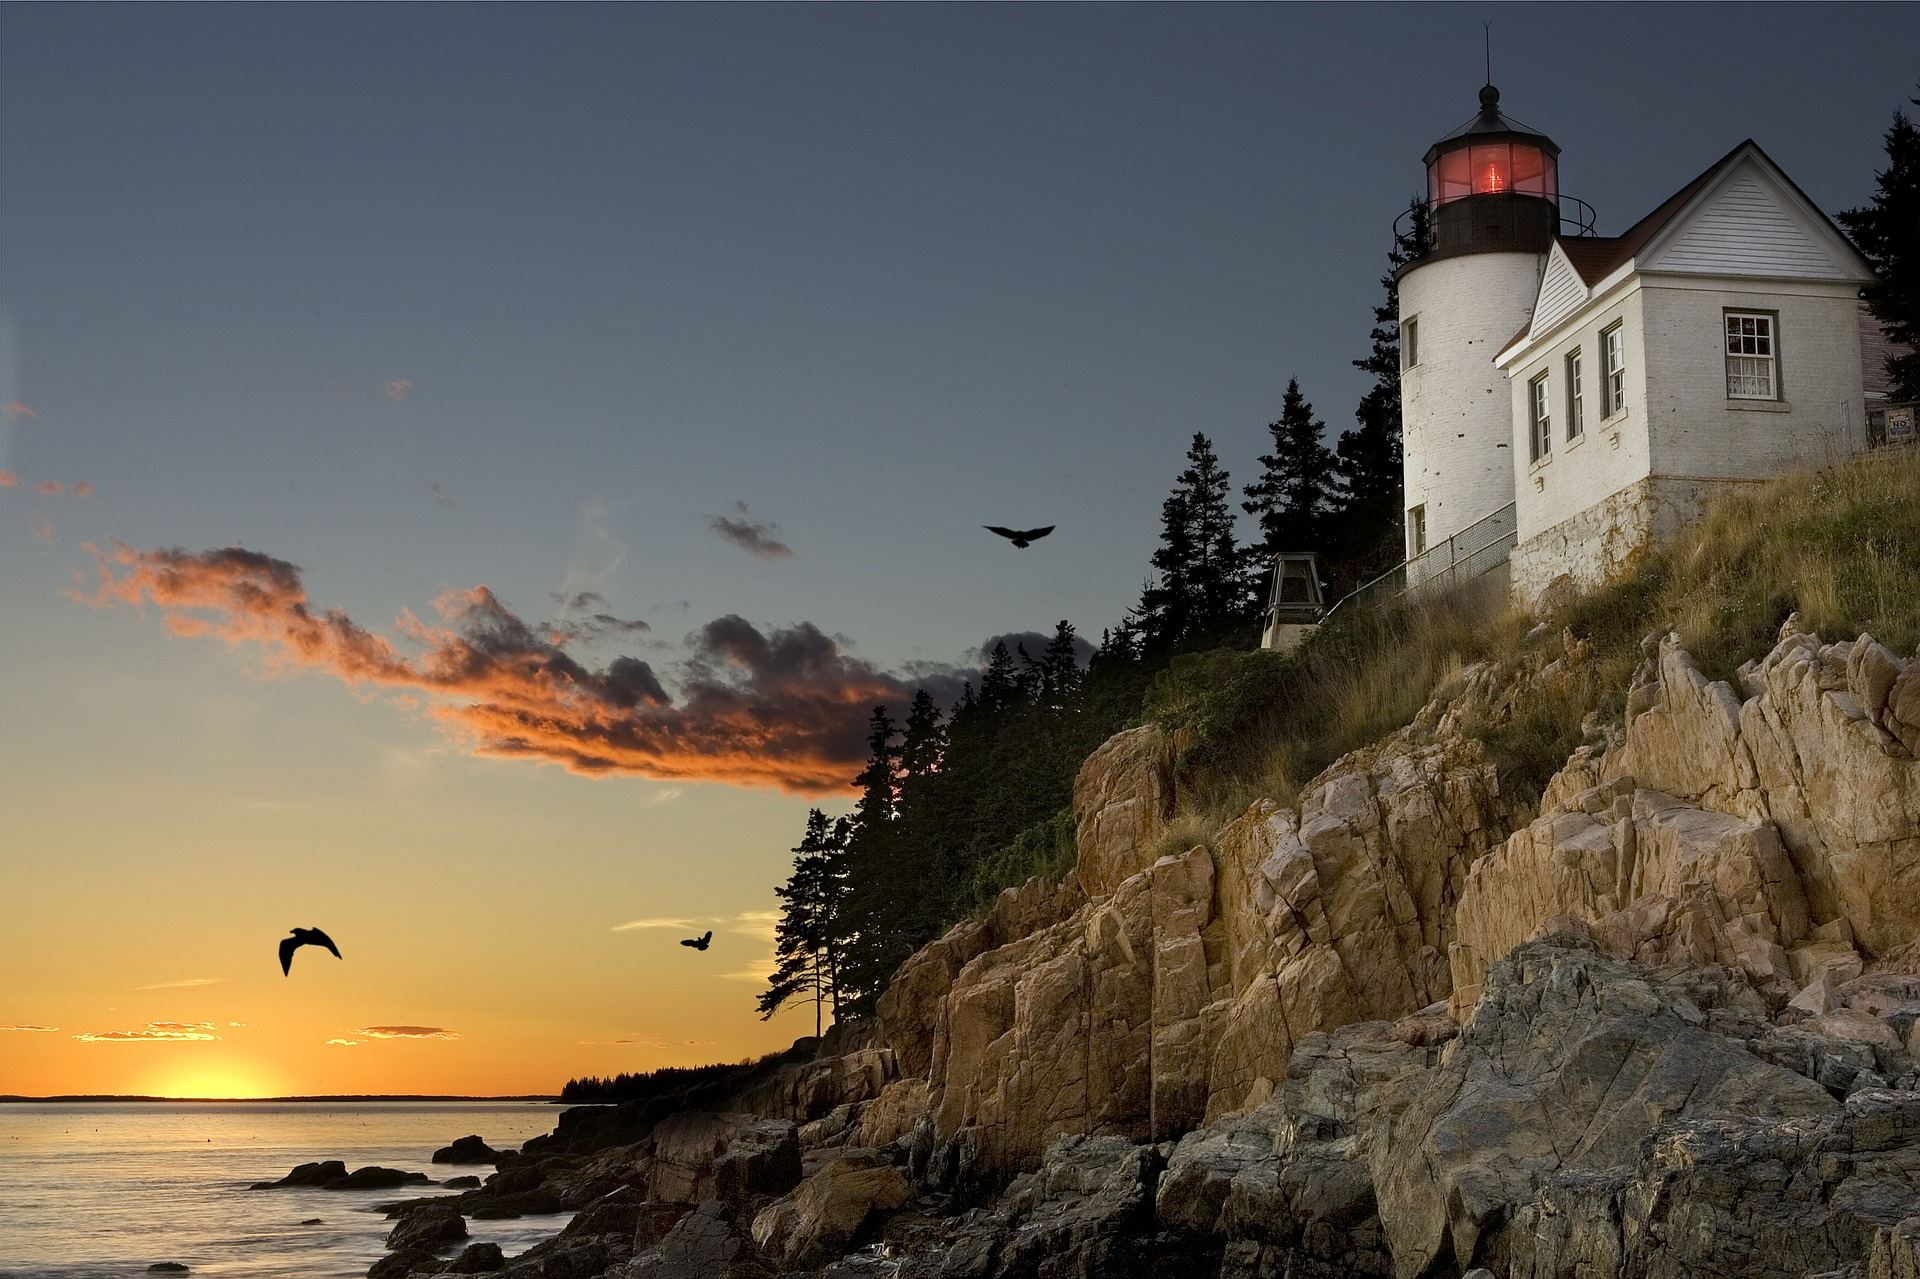 lighthouse-540792_1920